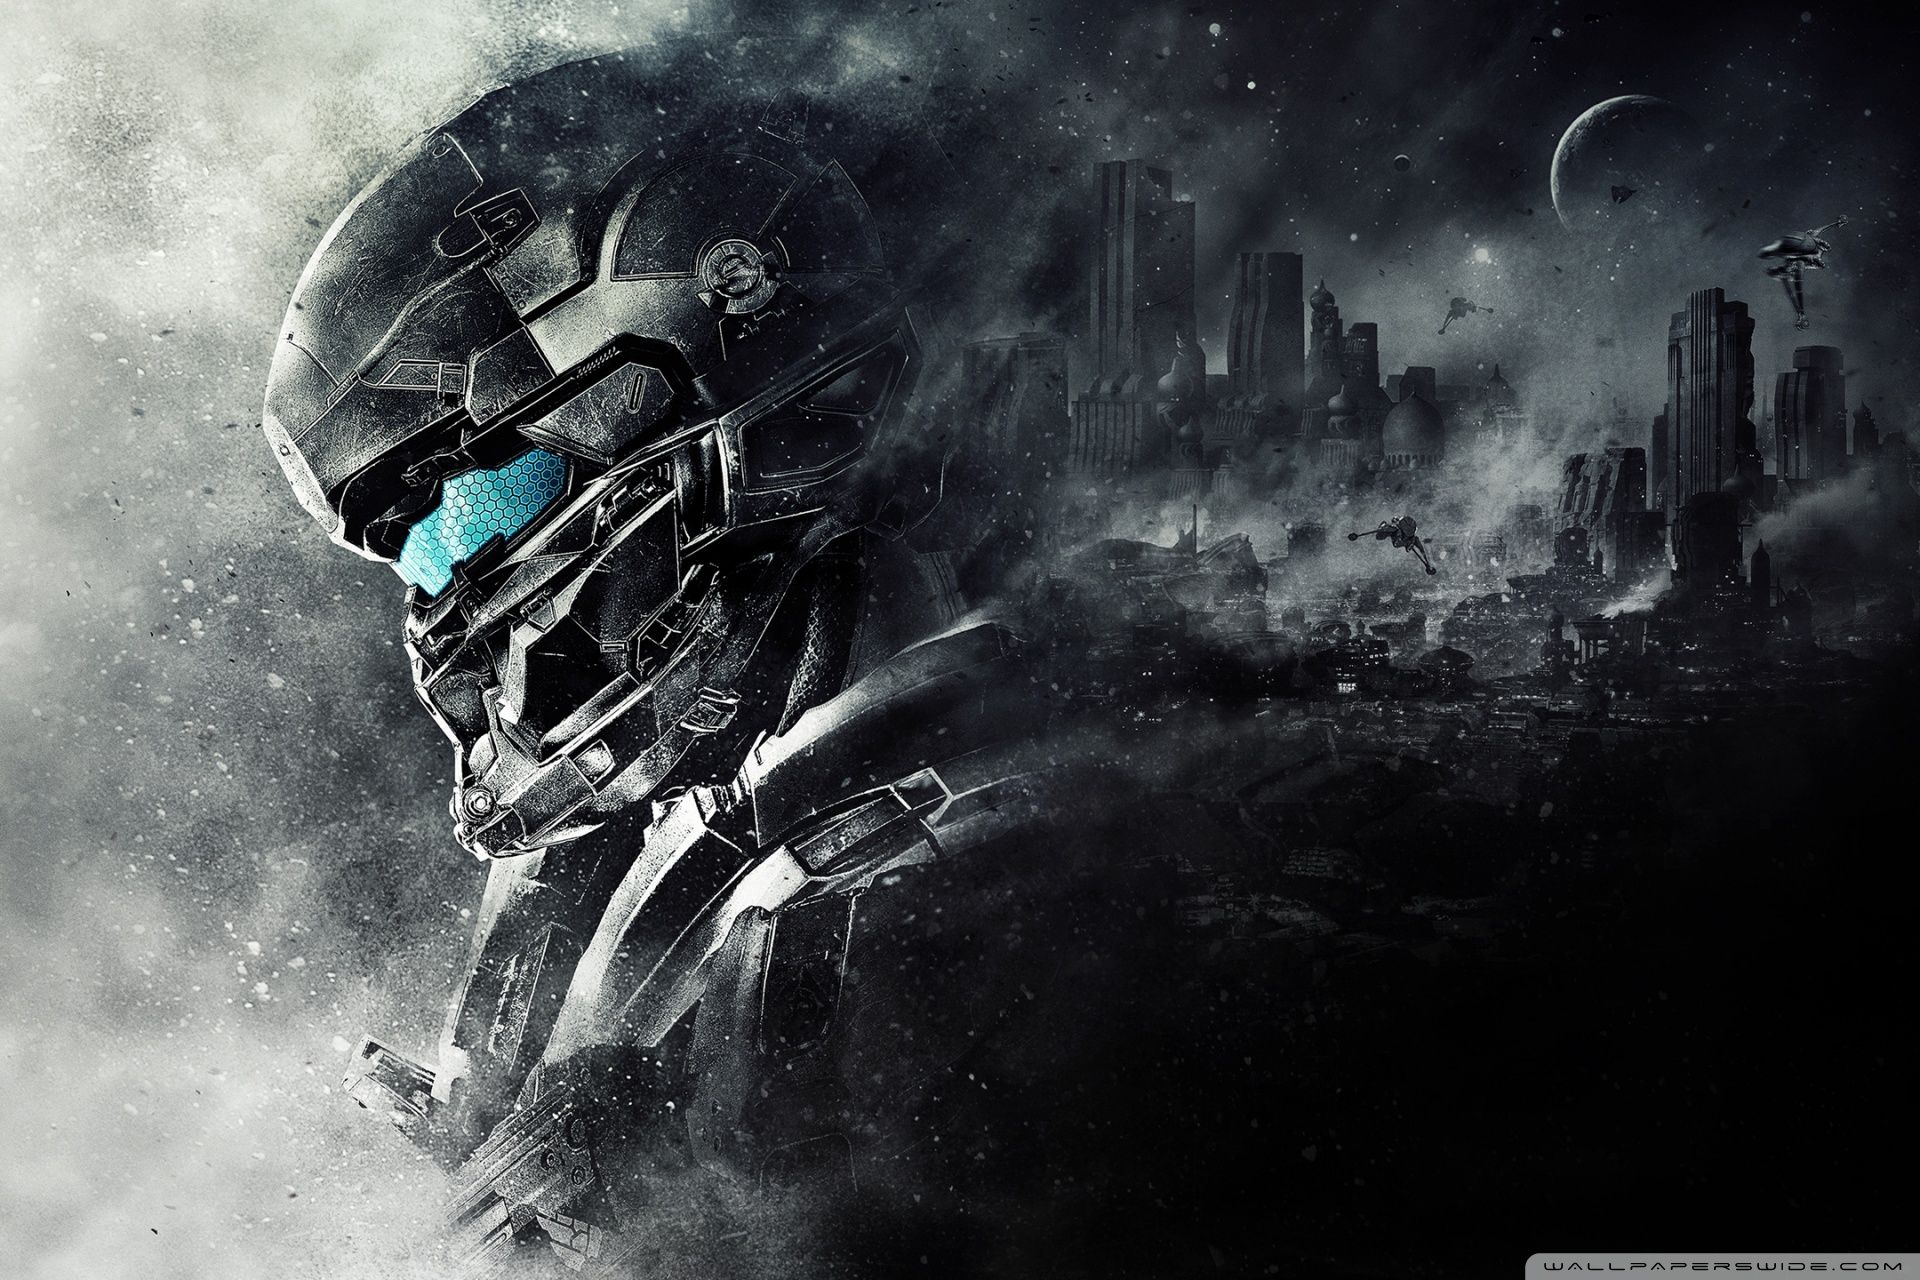 Halo 5 Odst Concept Art